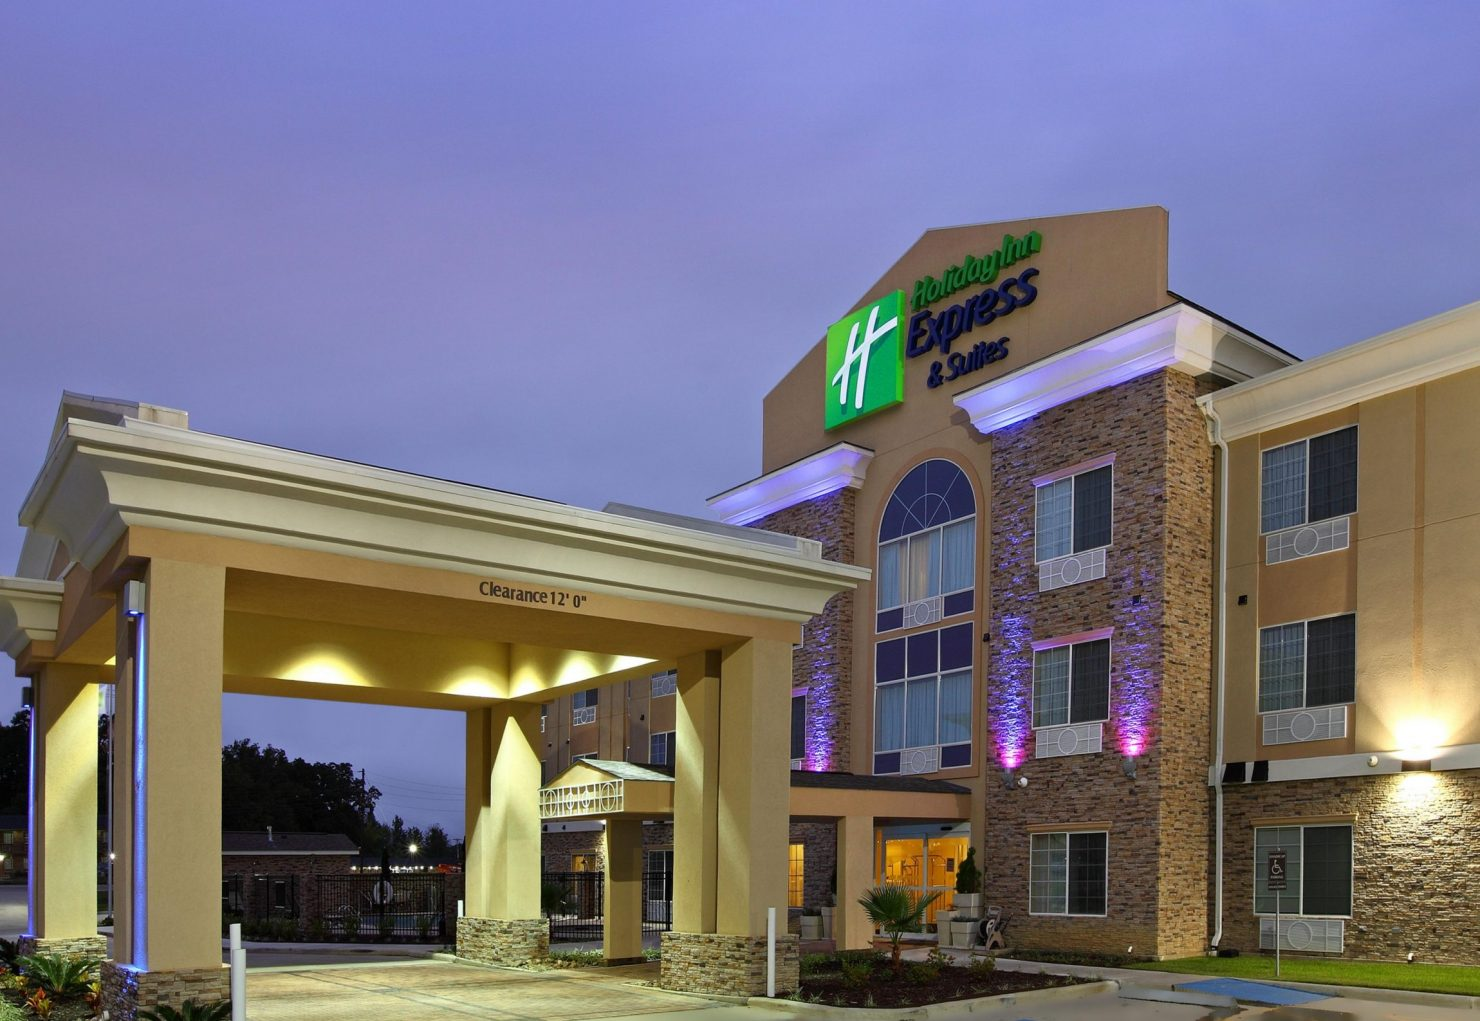 IHG Holiday Inn Express and Suites, Hampton Inn College Station, TX